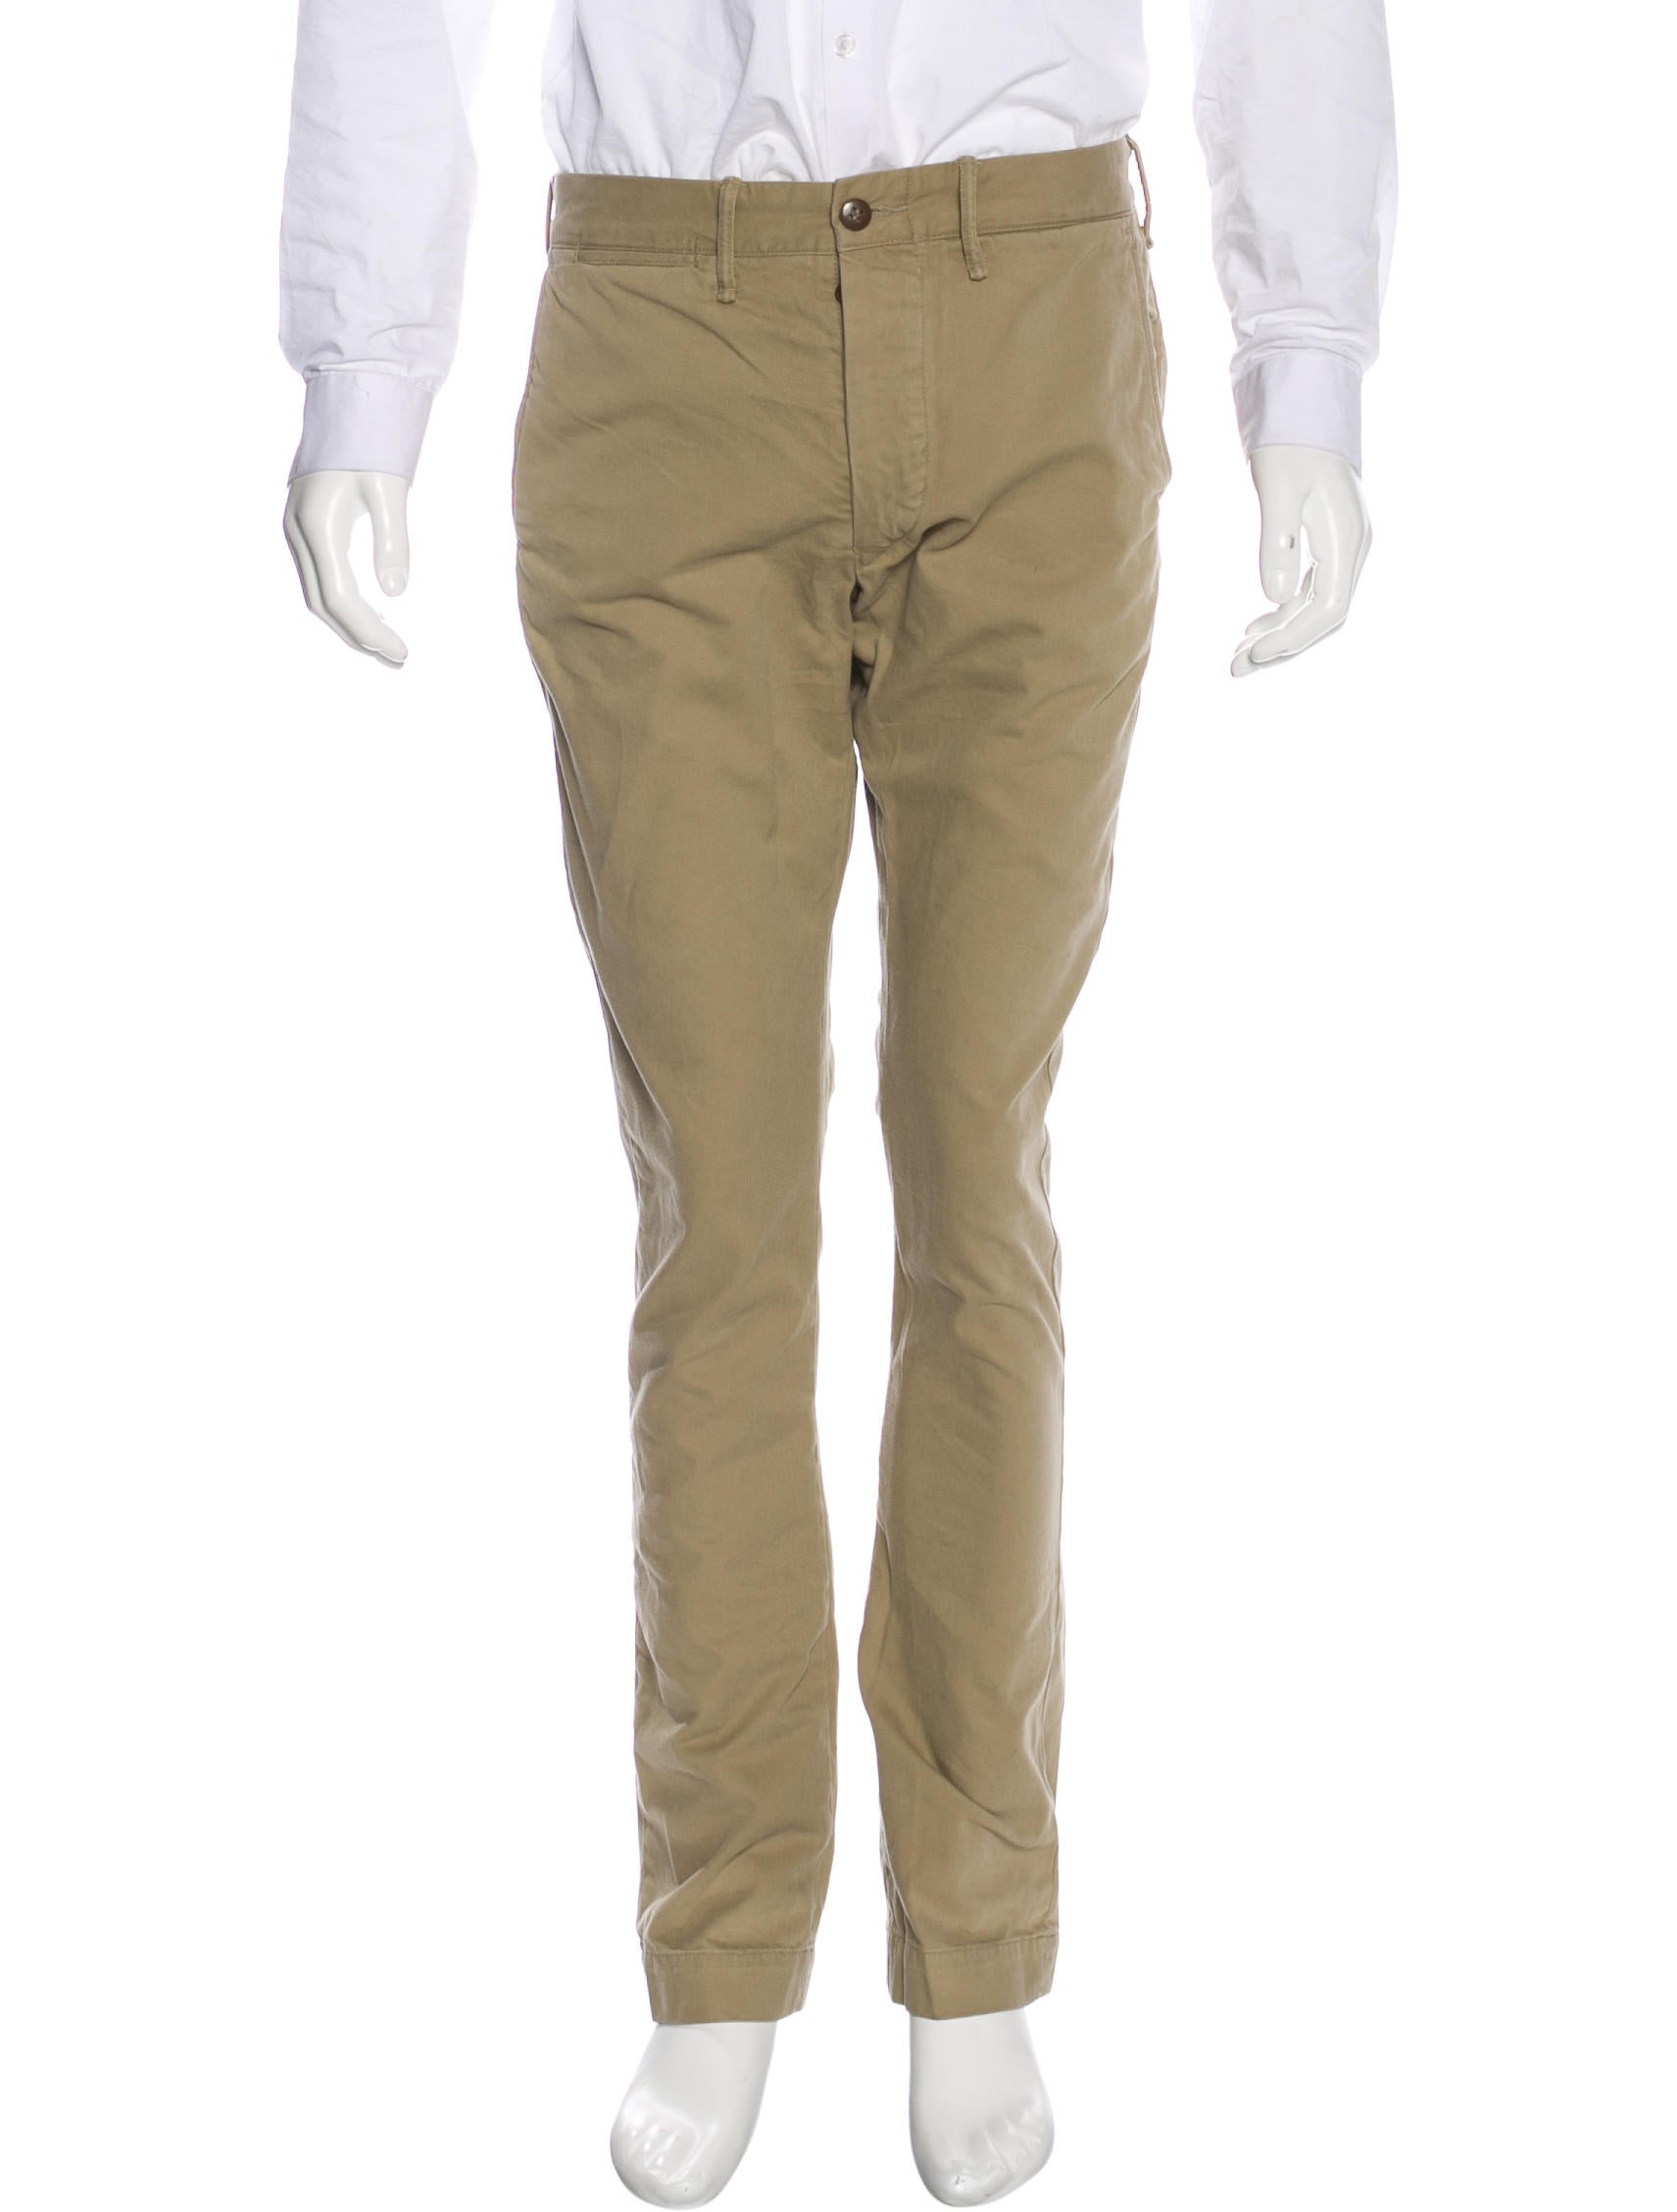 Men's chino pants are available in a variety of fits, colors, and styles. Whether you're looking for tried and true khaki pants for men, plaid chinos, or stylish skinny black chino pants, PacSun's excellent selection's got you covered. Starting with the basics, every guy should own a decent pair of men's khaki pants.